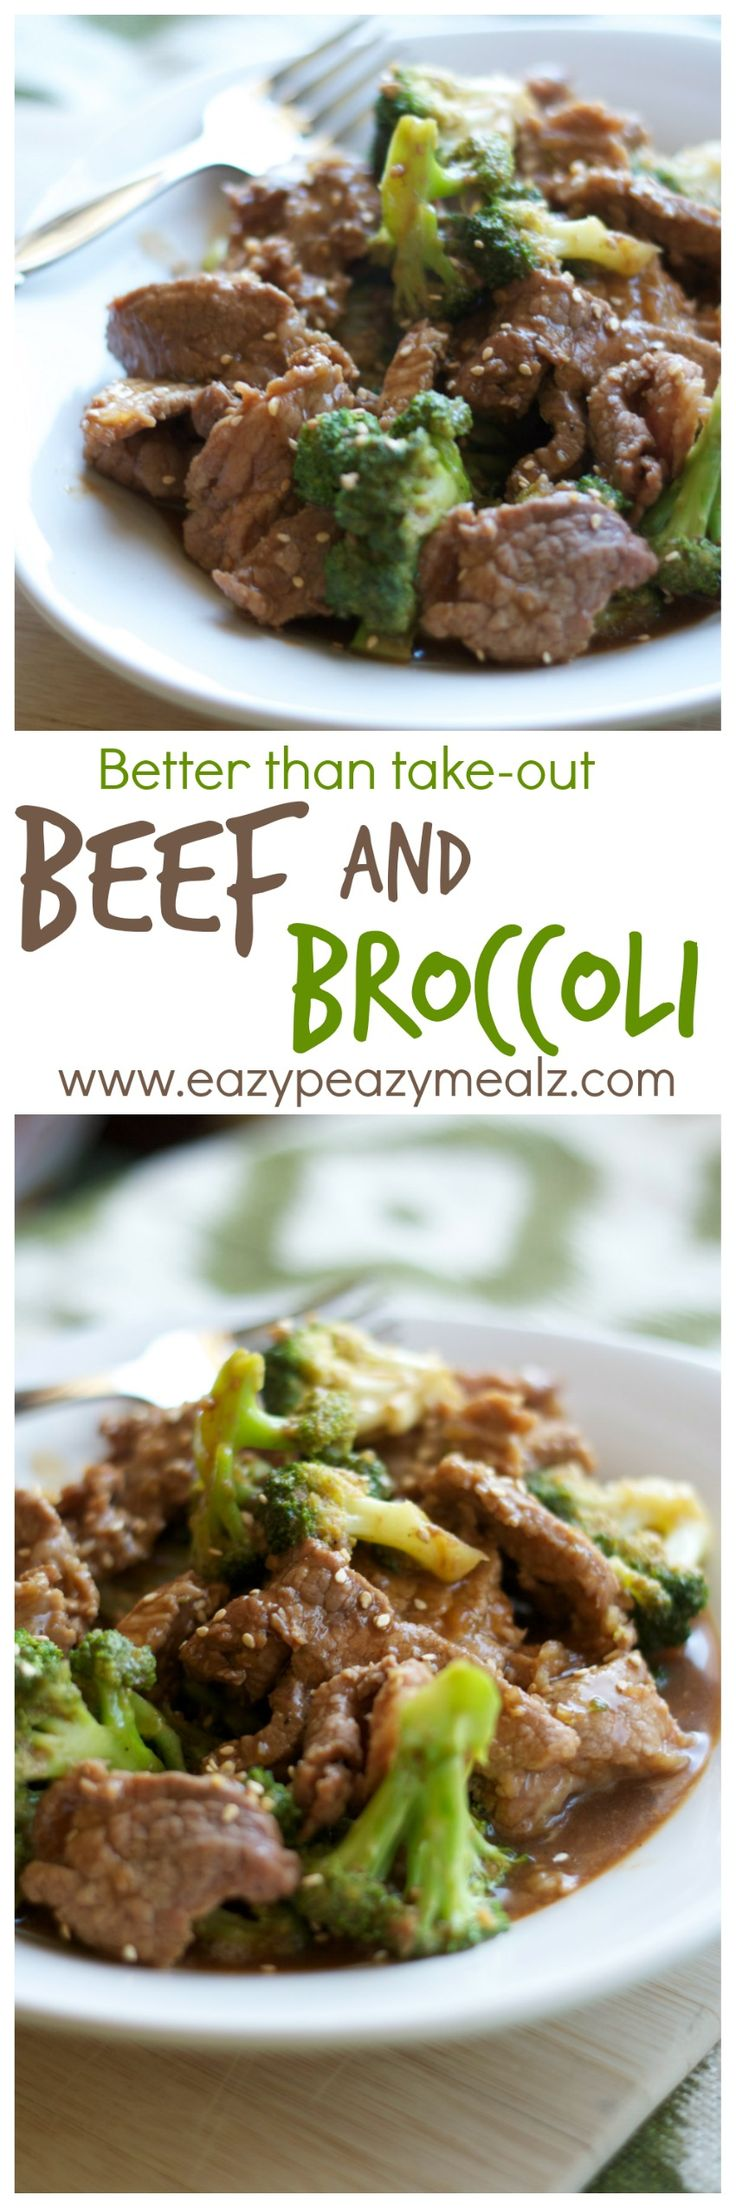 This is our favorite dinner! It is so easy to make, and it tastes so much better than what you would get at a restaurant, and none of that yucky MSG! - Eazy Peazy Mealz